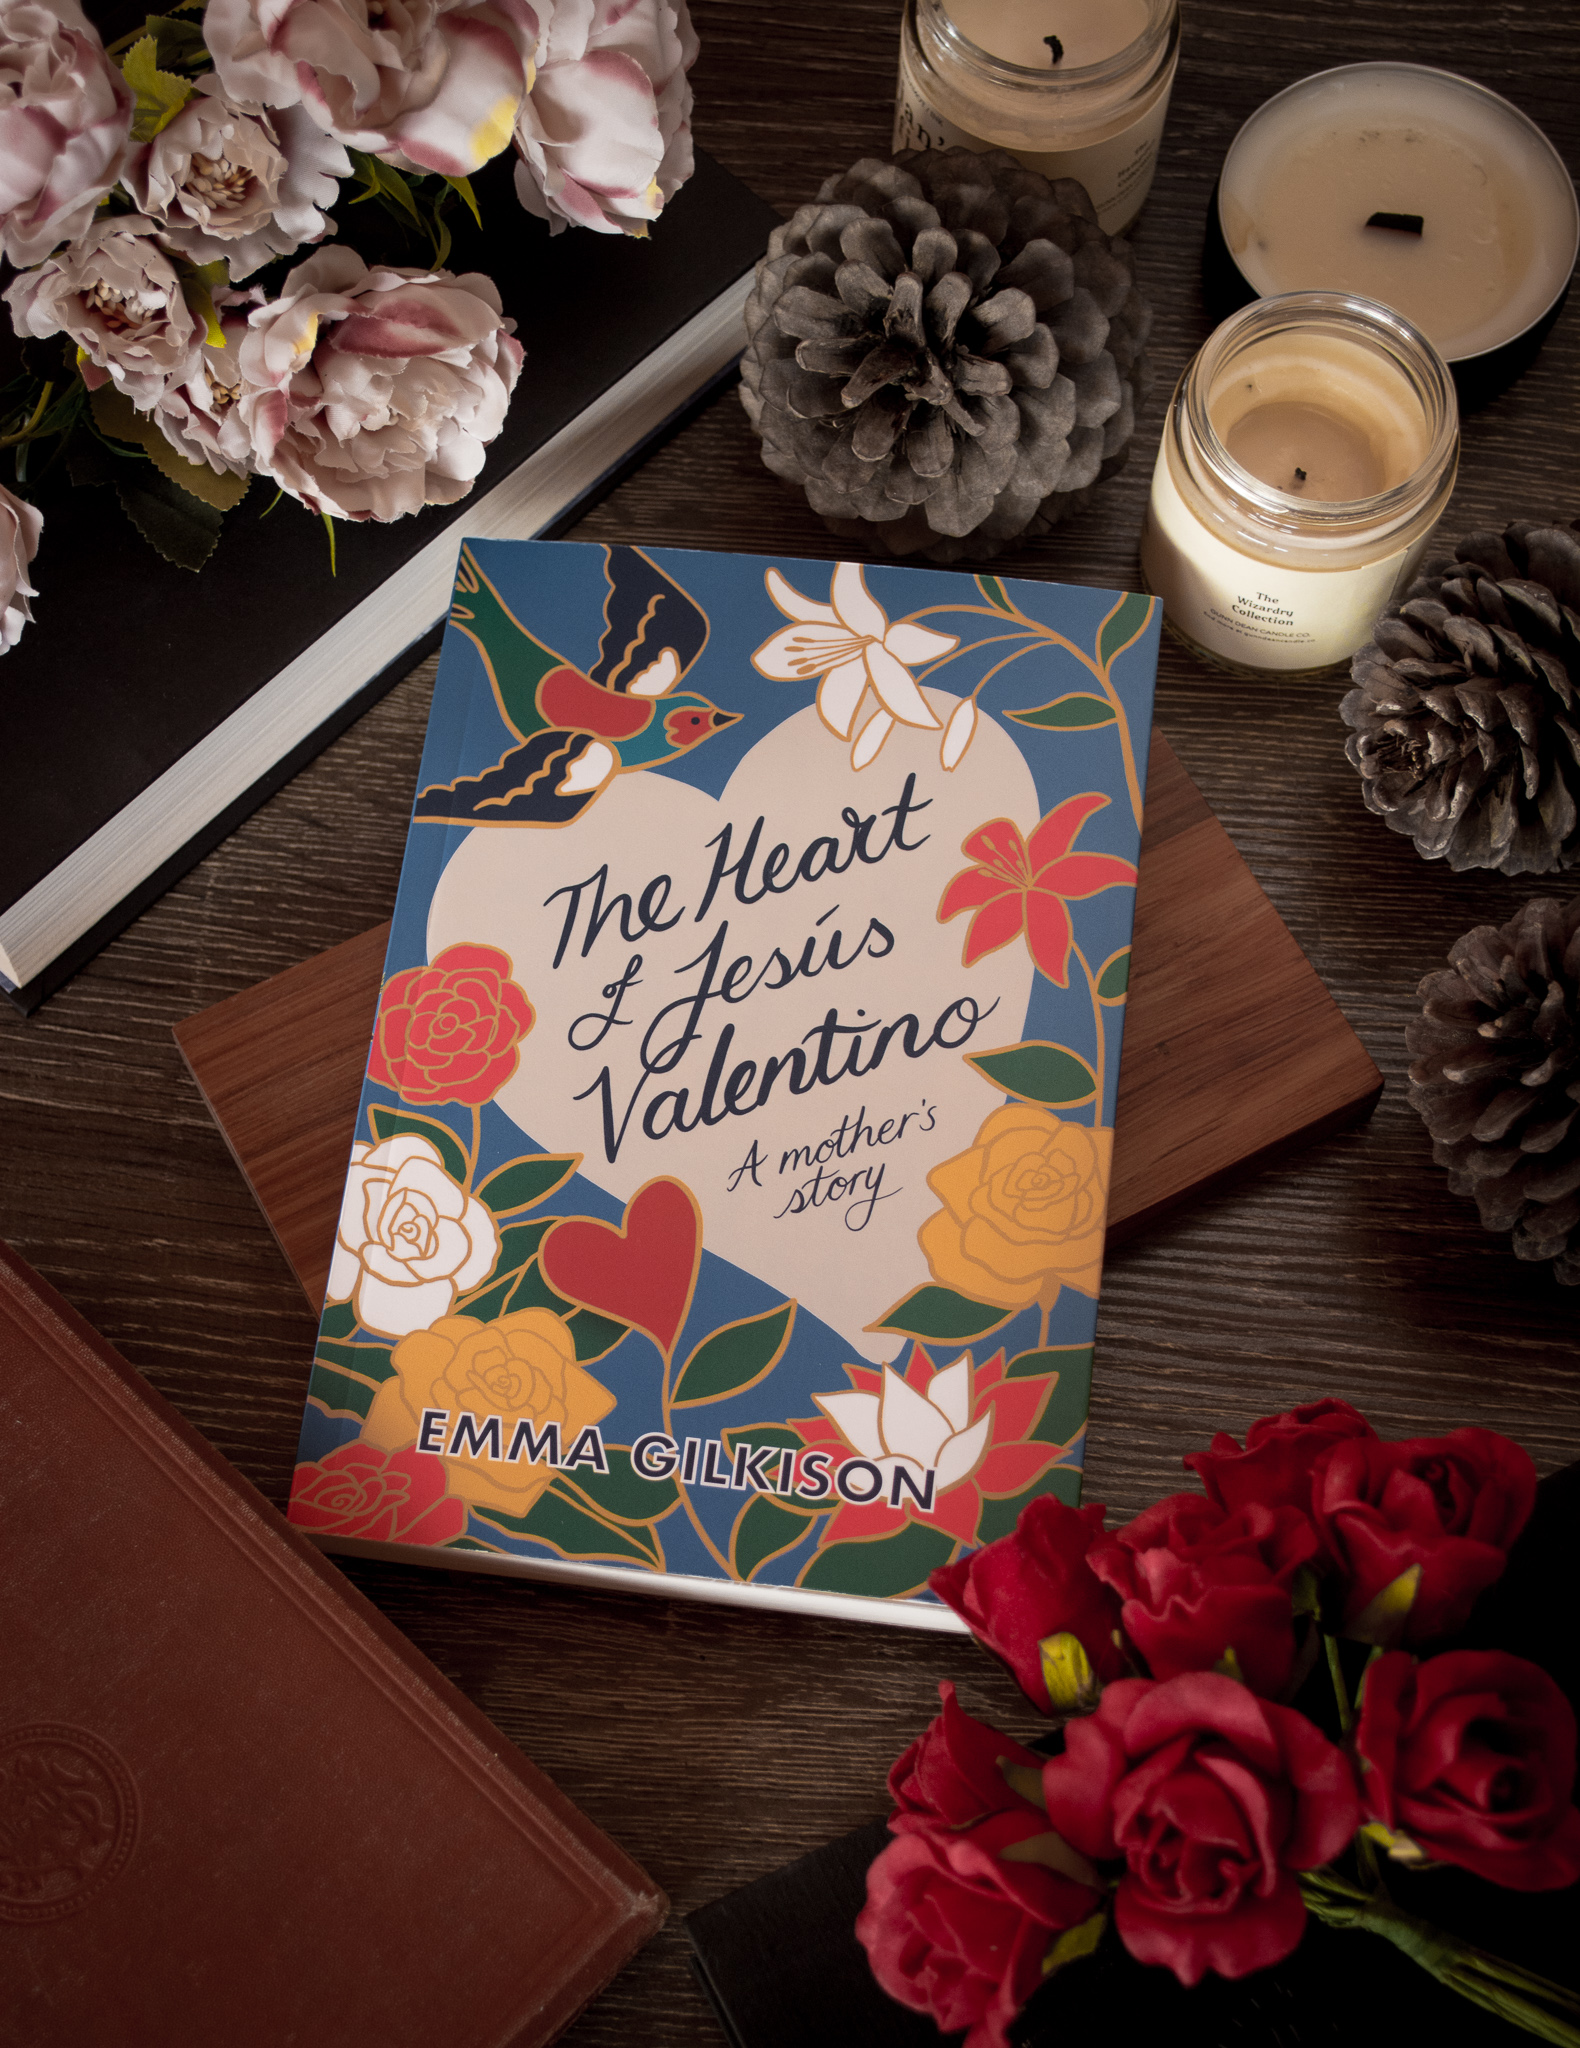 The Heart of Jesús Valentino - Awa Press, 2018Mary got in touch with me to work on a beautiful and unique memoir by New Zealand author Emma Gilkison. When I first heard the brief I thought, oh my goodness, where do I even start with this subject matter? It was a wonderful challenge… [READ MORE]